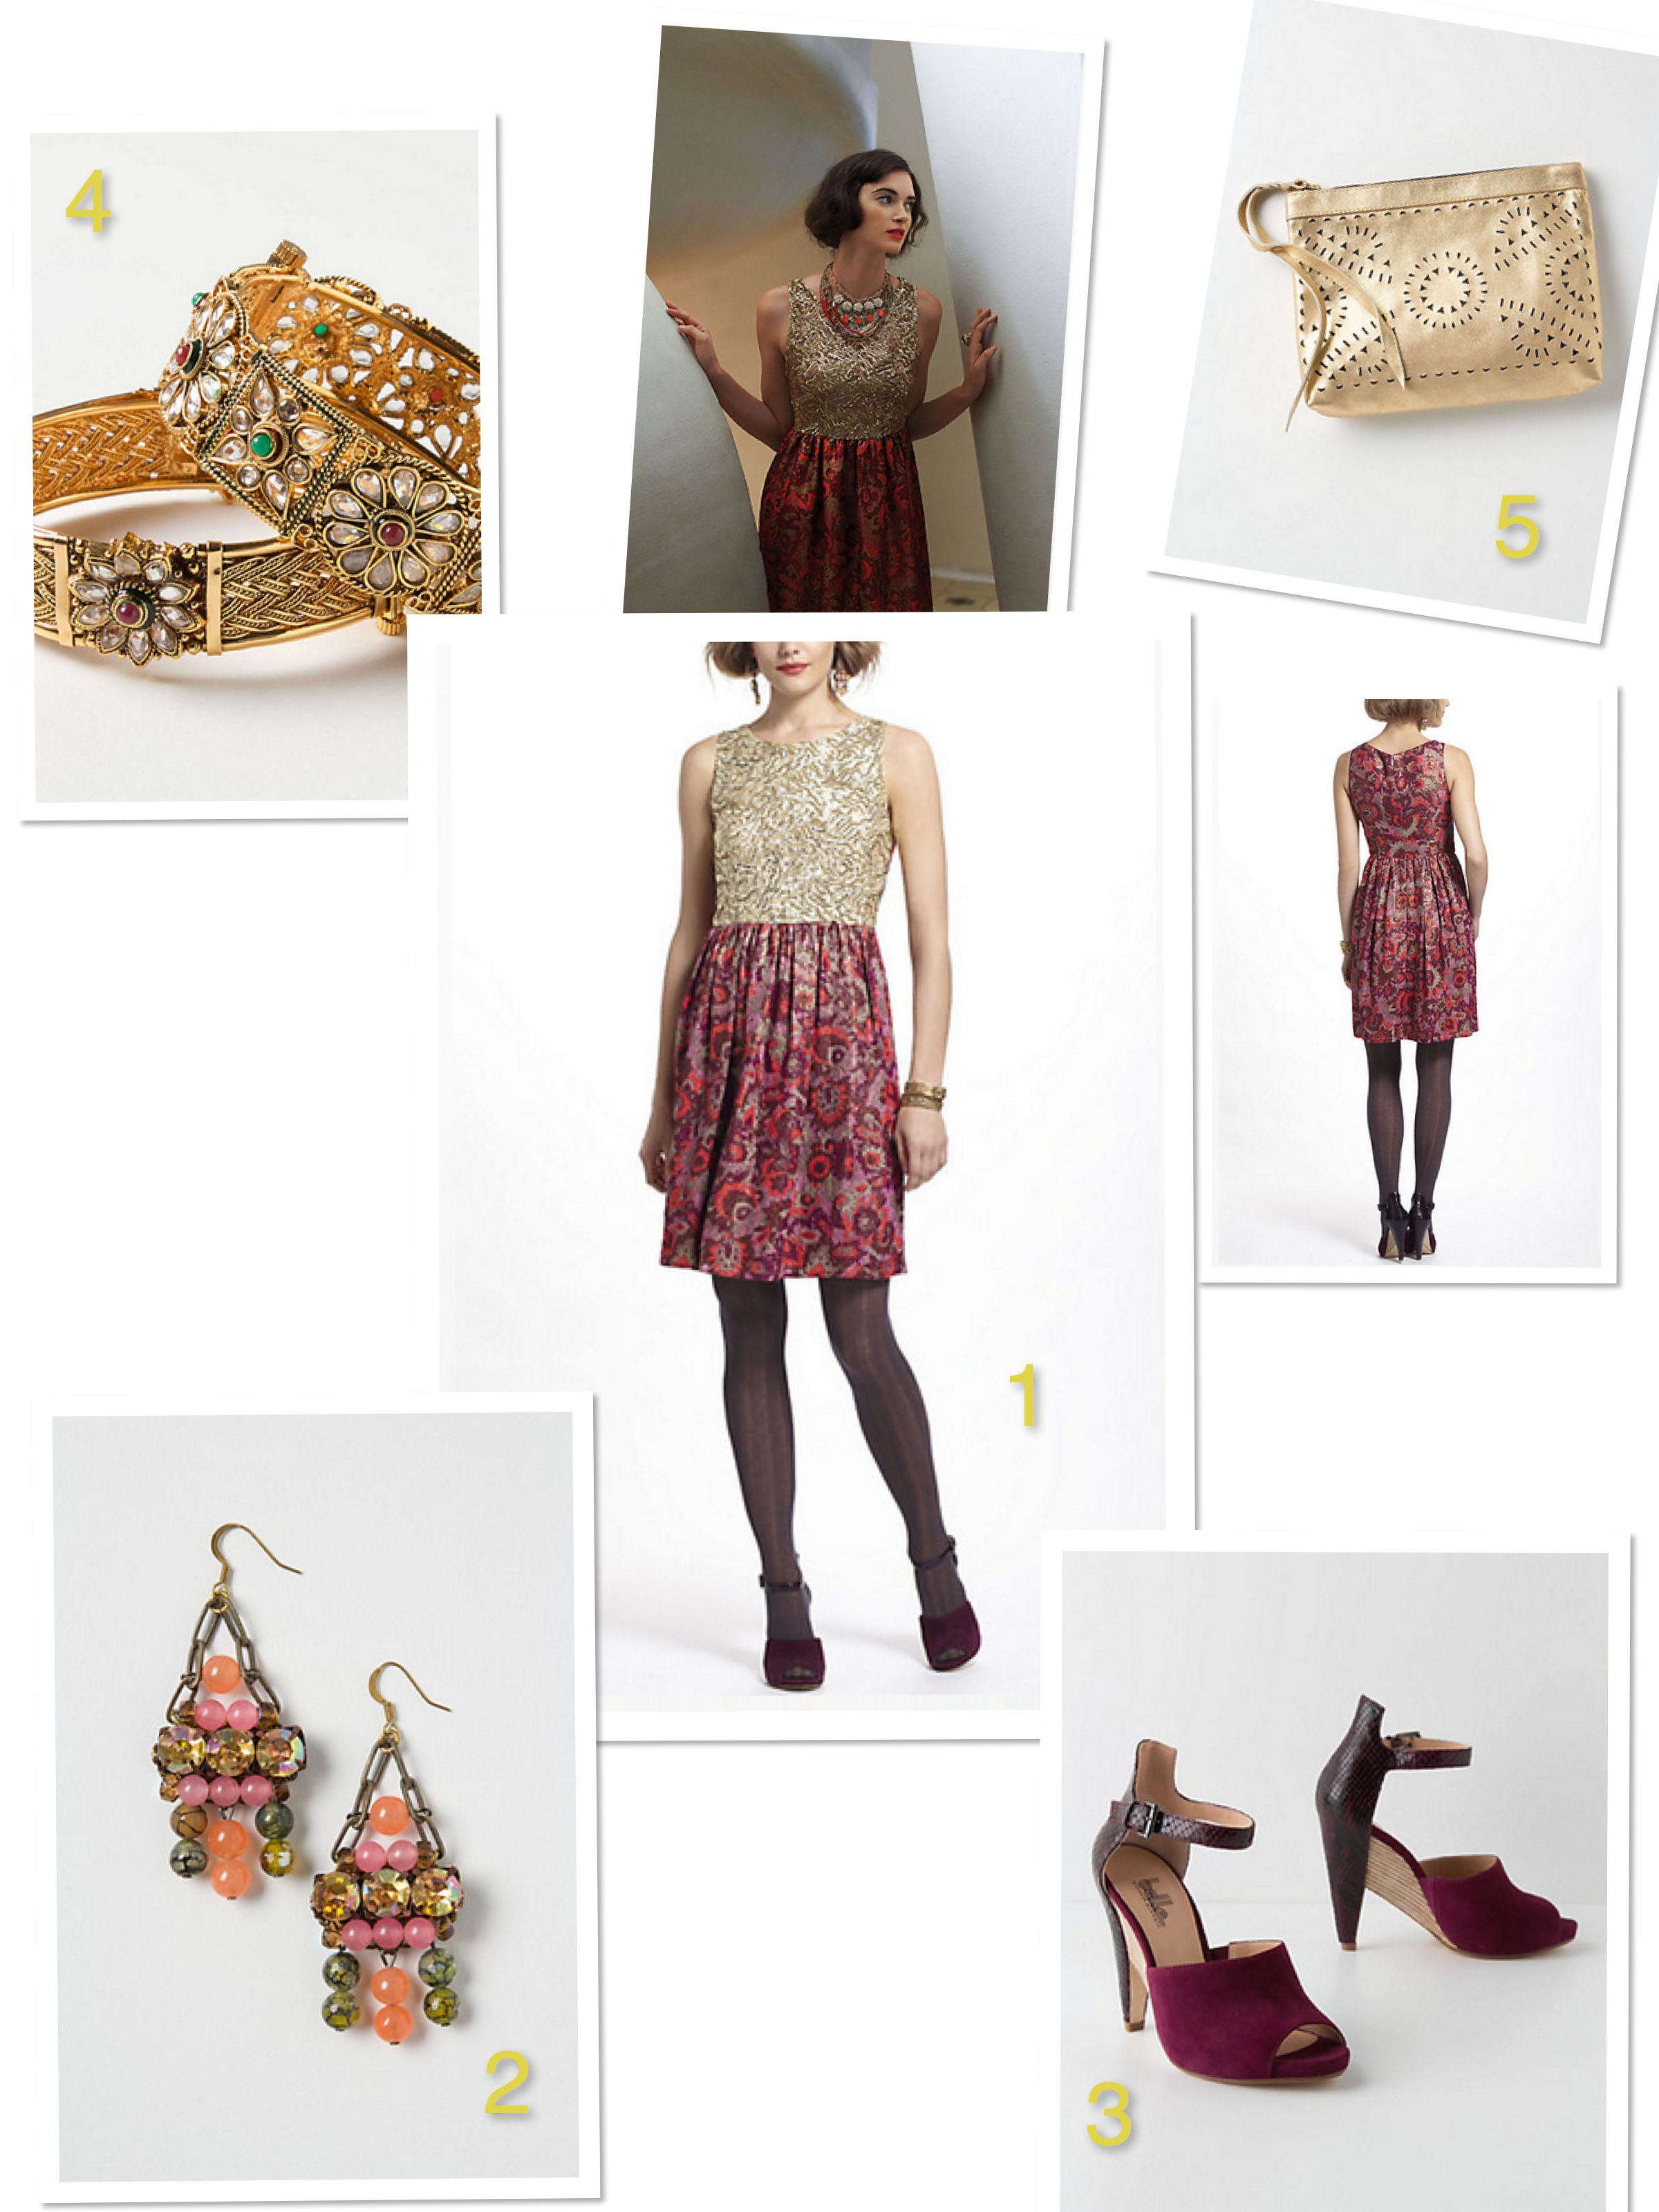 Fall Wedding Outfit Ideas - Rustic Wedding Chic